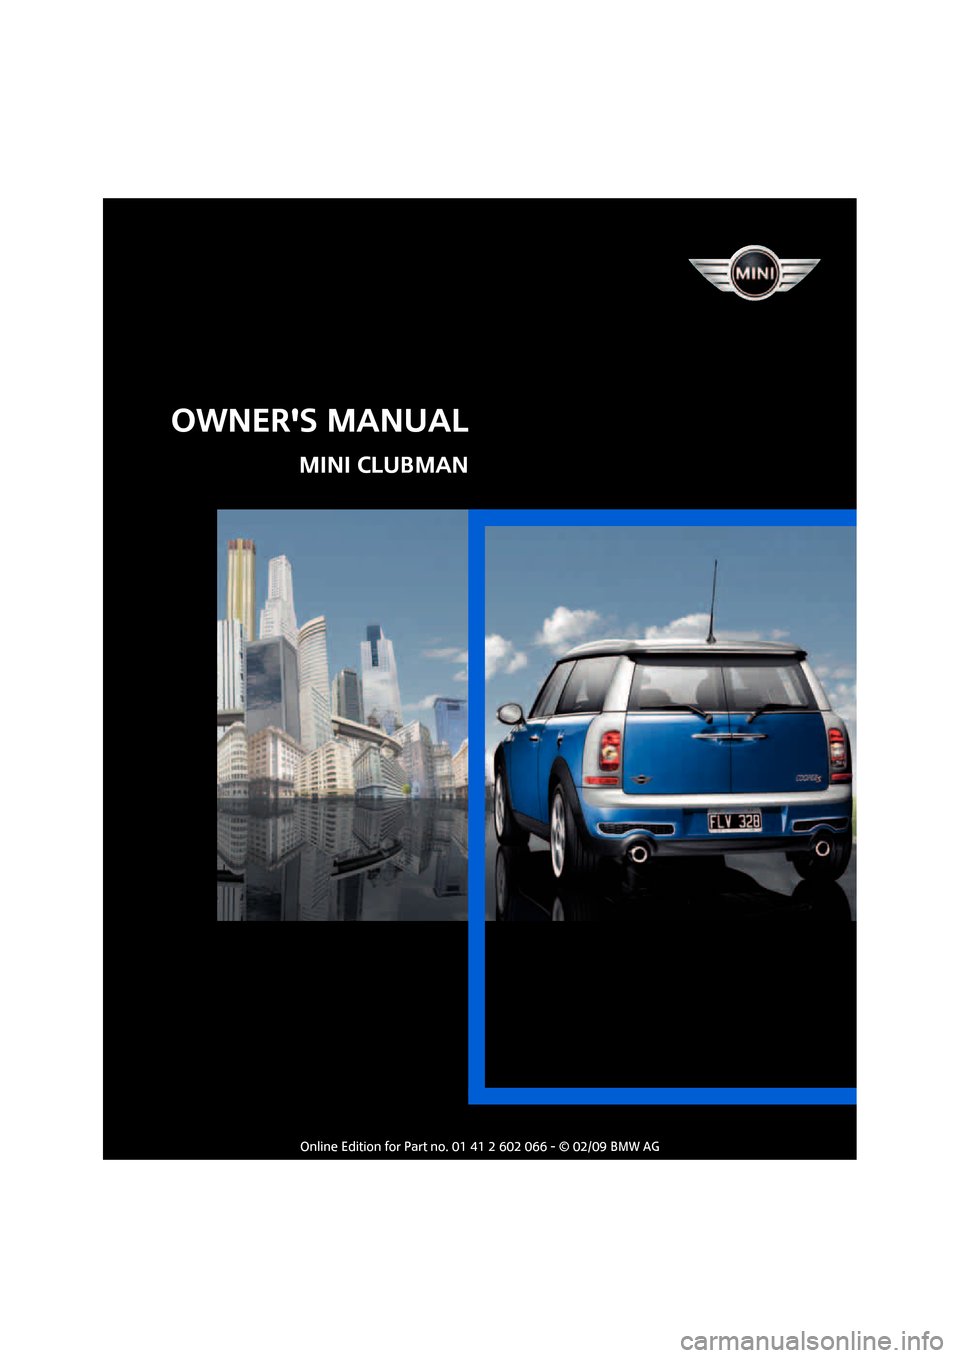 MINI Clubman 2009  Owners Manual (Mini Connected)    OWNERS MANUAL MINI CLUBMAN